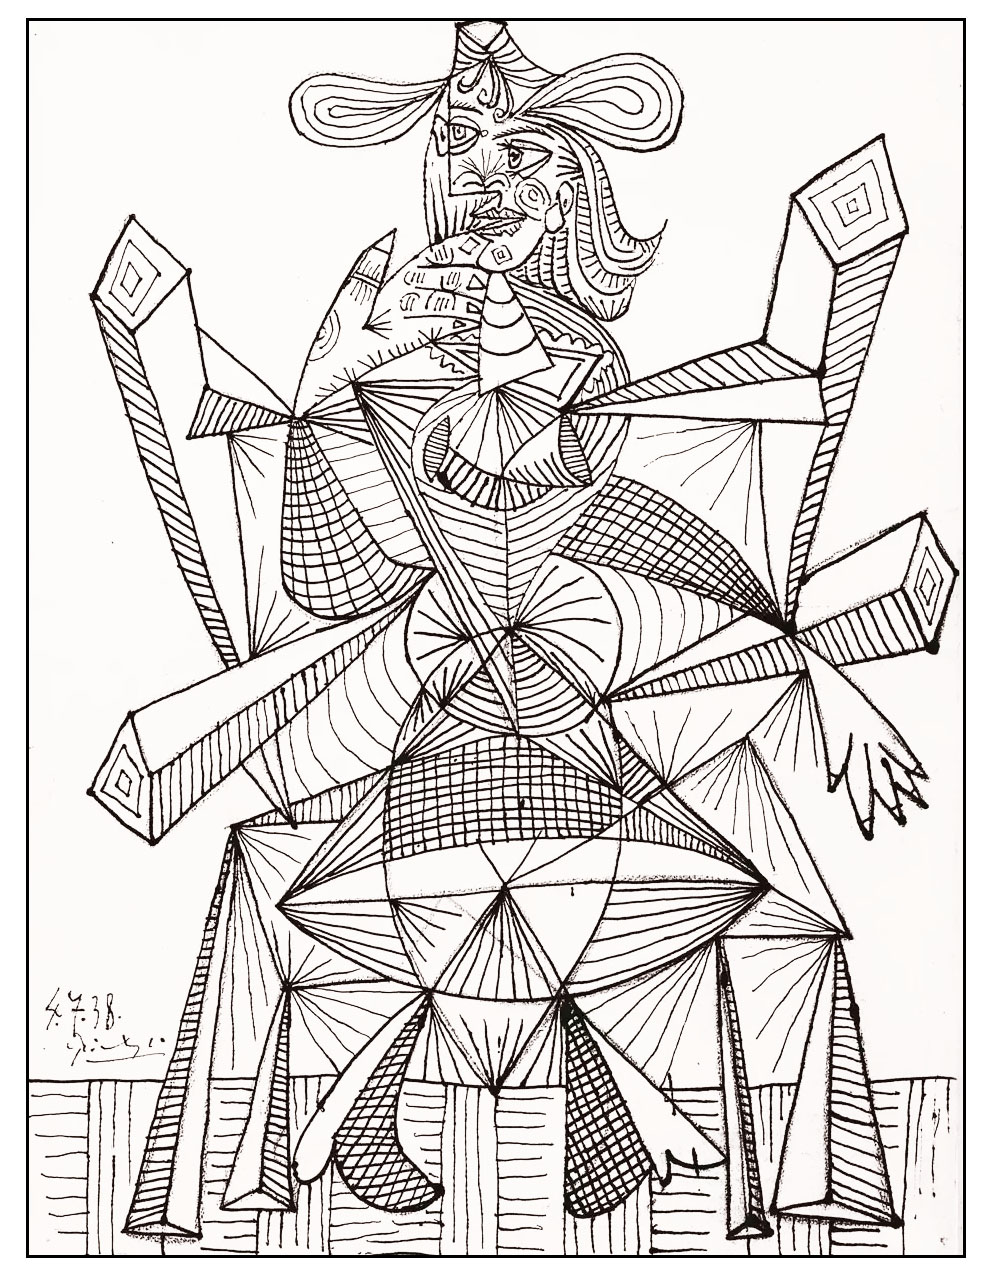 Coloring adult drawing by picasso 1938